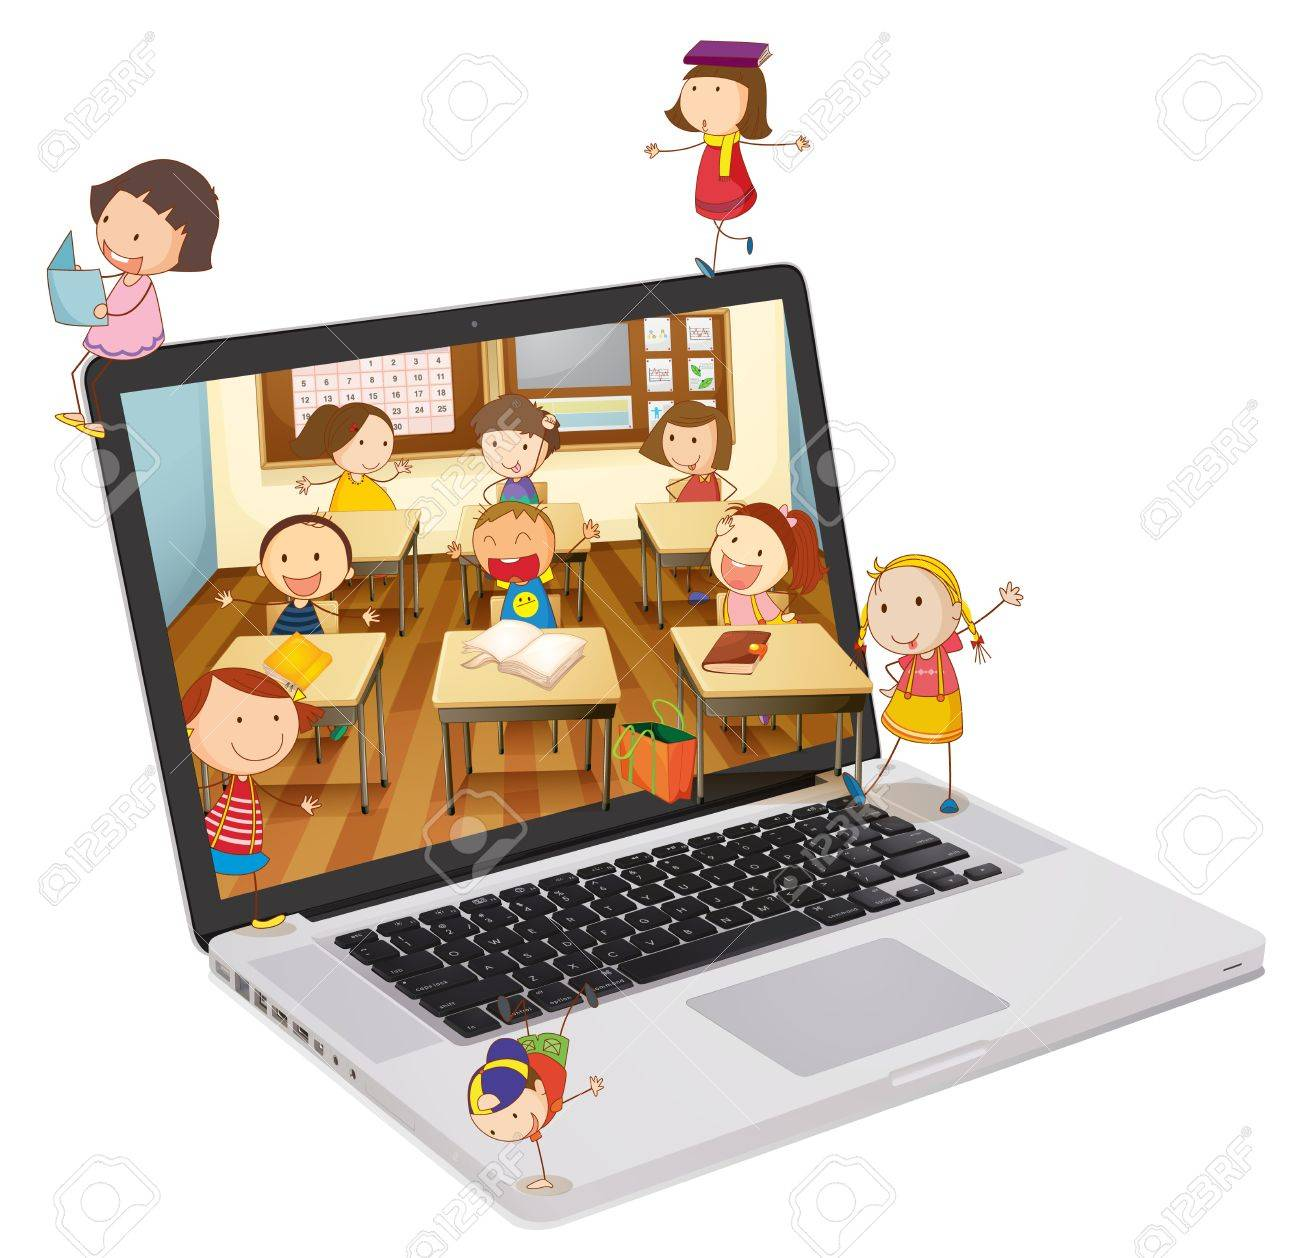 illustration of school students picture on a laptop Stock Vector - 14115129